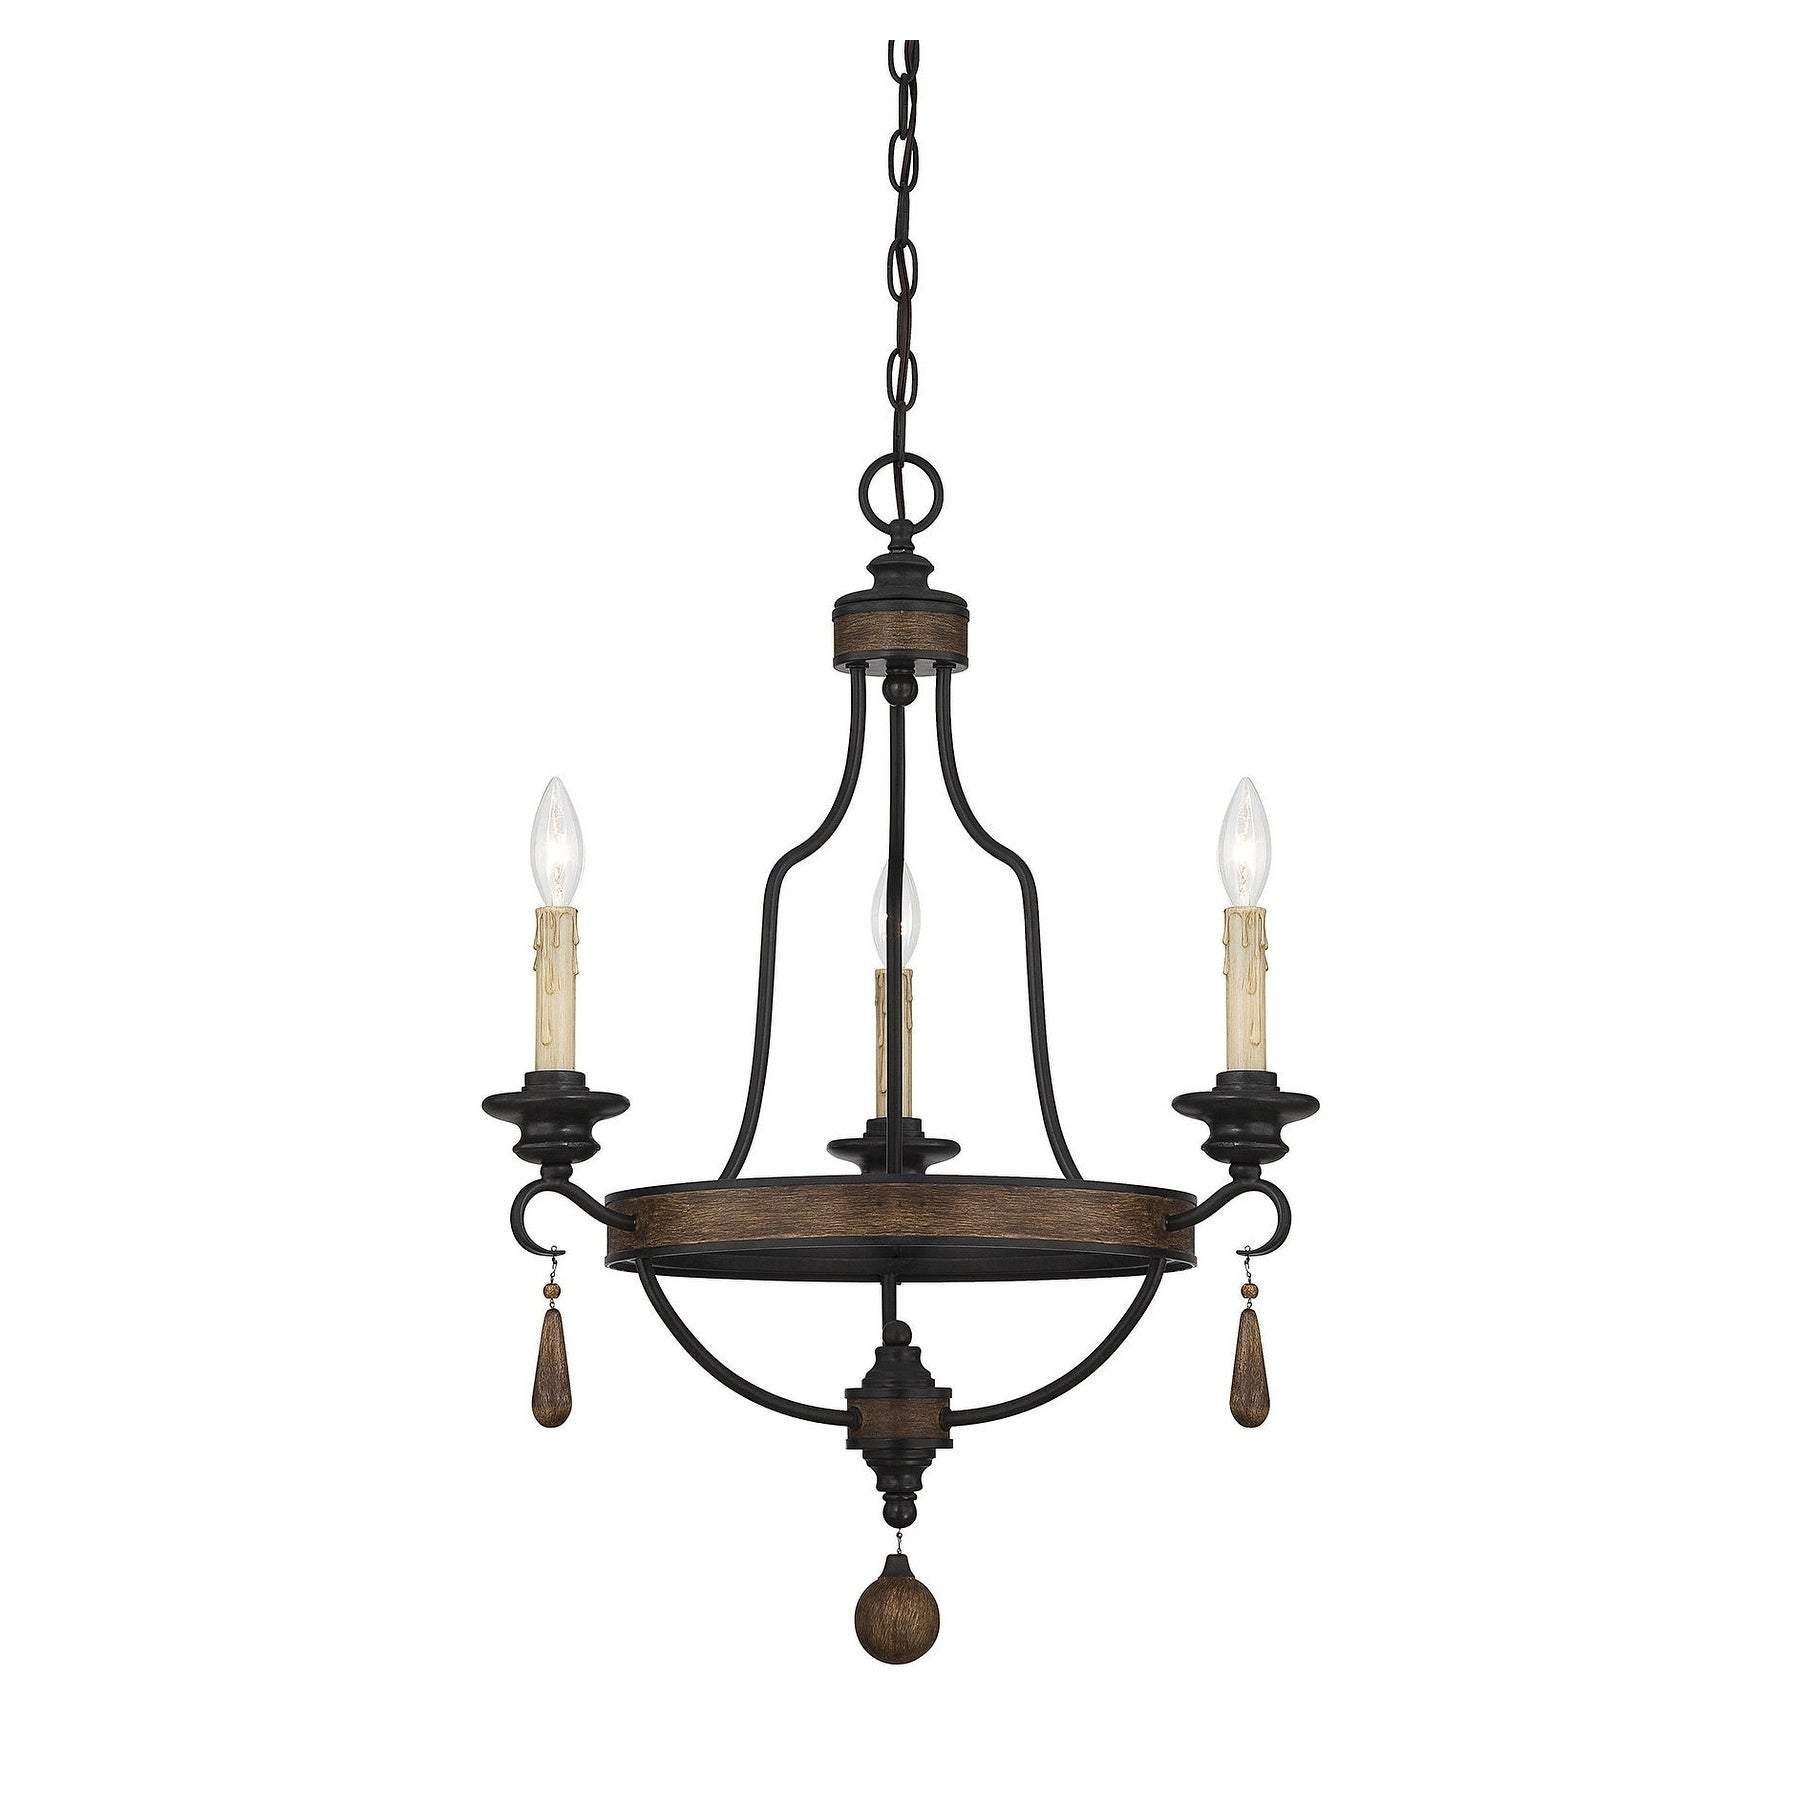 Kelsey Durango Finish Rustic 3-light Chandelier